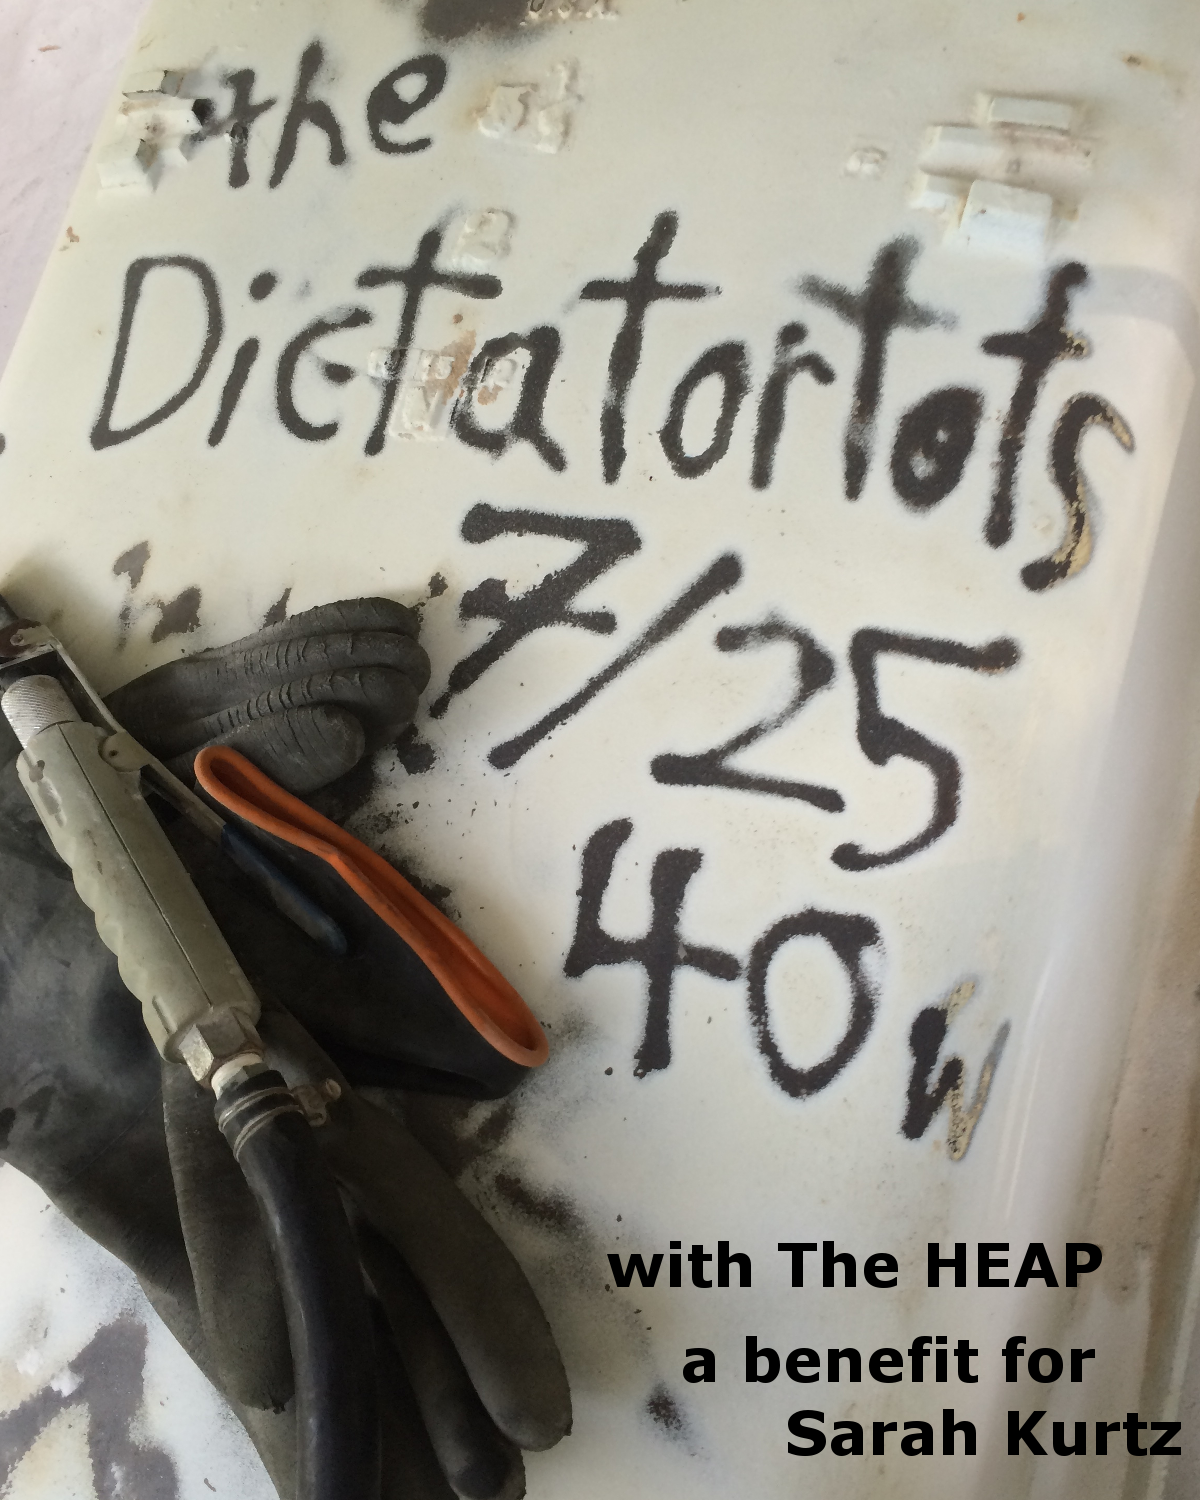 The HEAP vs. The Dictatortots for Sarah Kurtz 7/25 at the 40 Watt Club